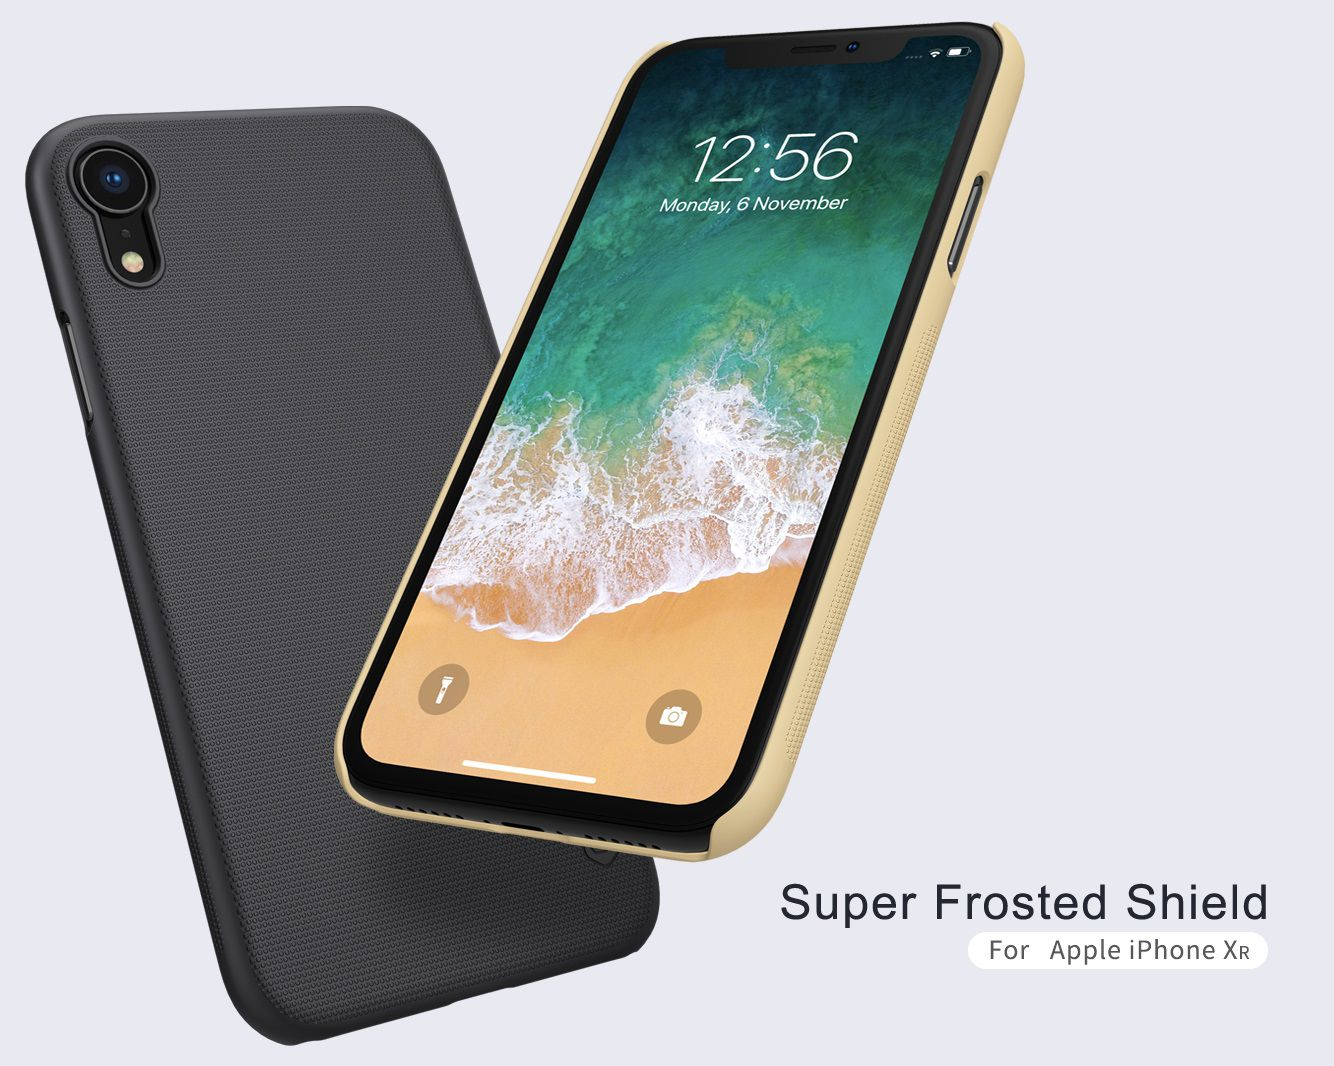 Capinha Capa Case Nillkin Iphone XR Super Frosted Shield - Sem Furo